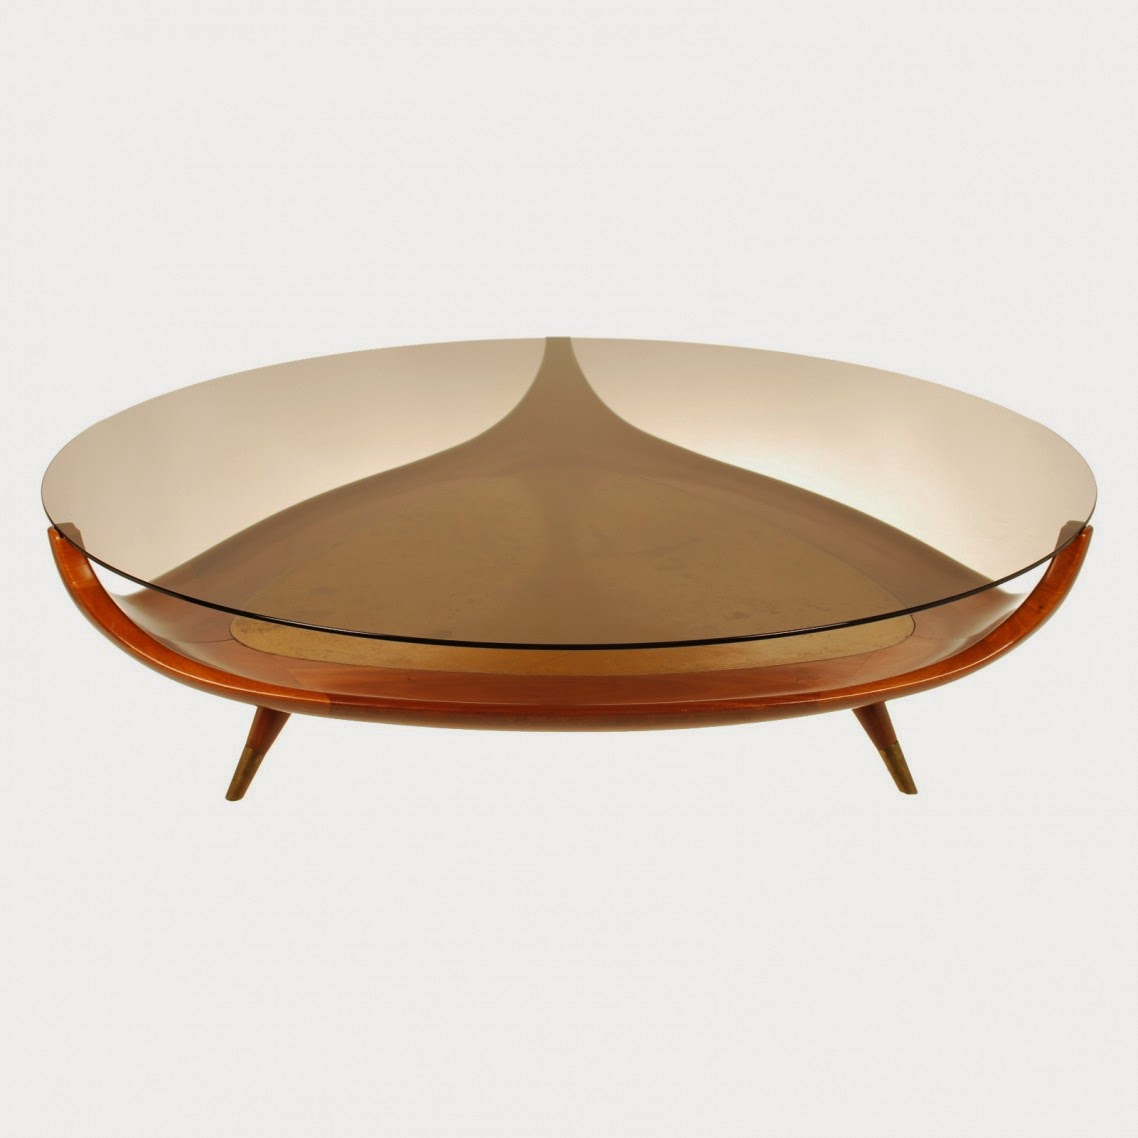 25 Elegant oval coffee table designs made of glass and wood